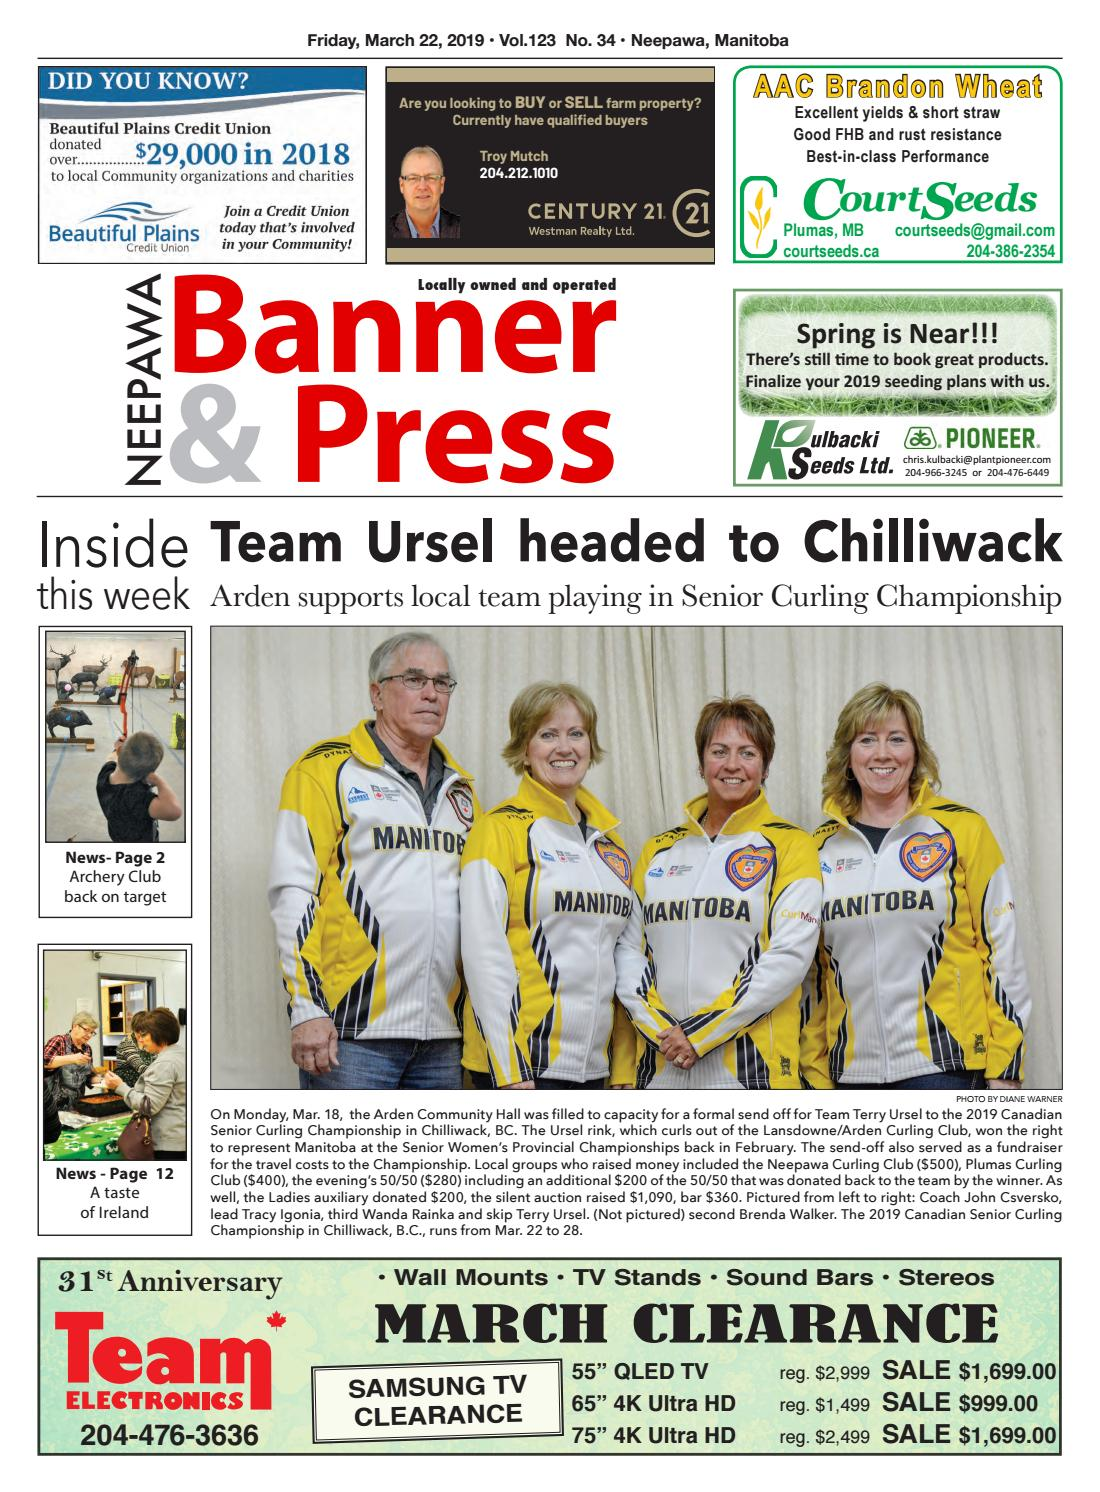 Friday March 22 2019 Neepawa Banner Press By Neepawa